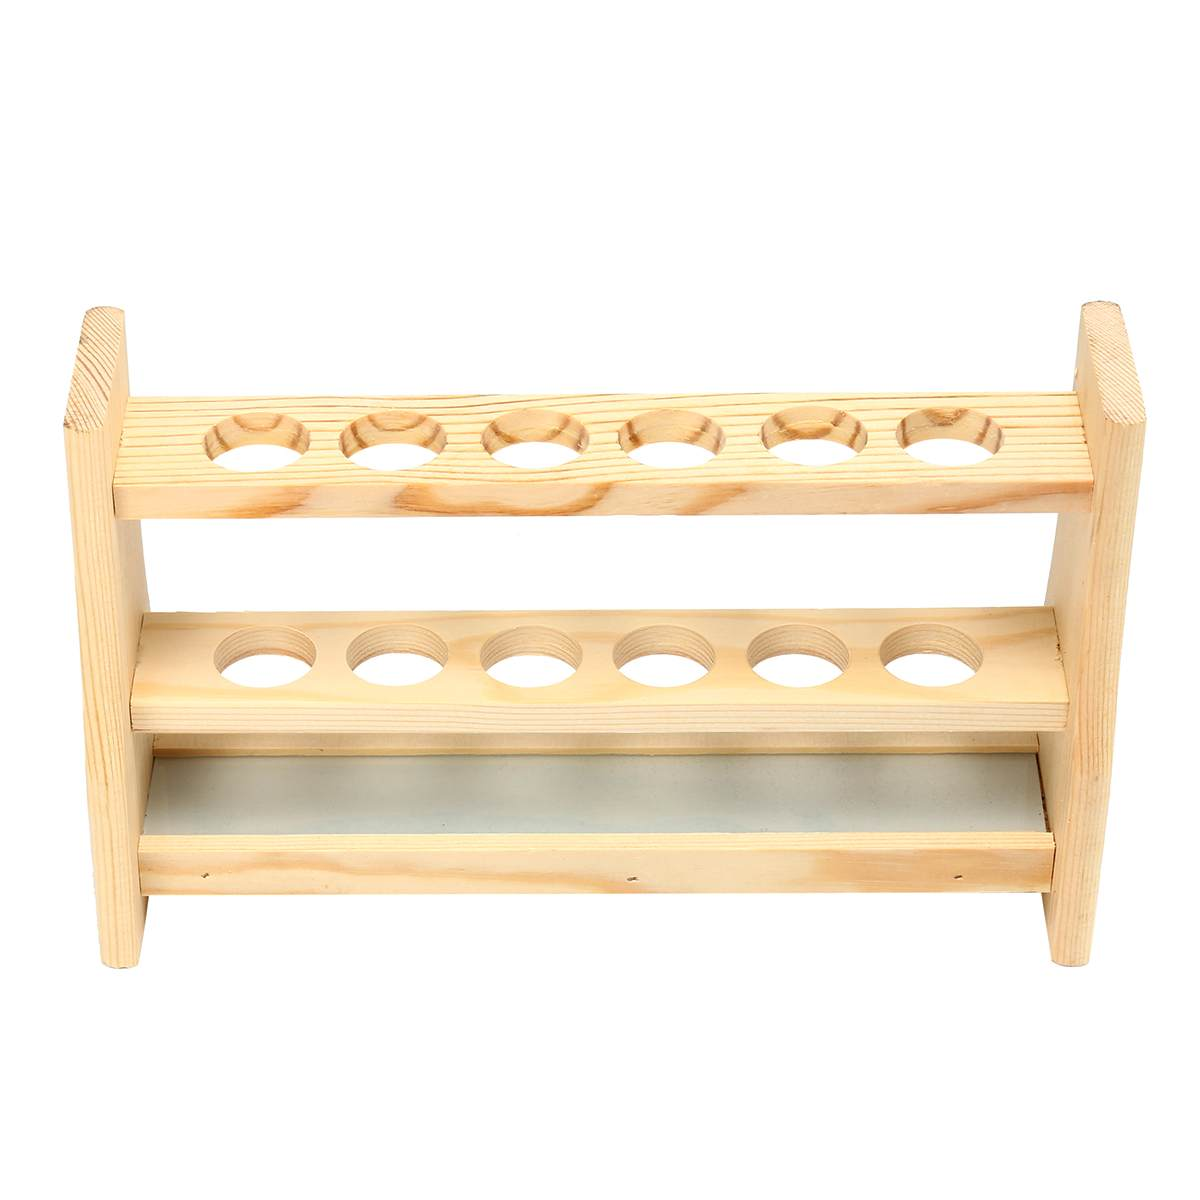 Wooden Colorimetric Test Tube Rack 6 Hole Thick Wood Wooden Tube Rack Laboratory Exports Manufacturers Hole diameter 25mmWooden Colorimetric Test Tube Rack 6 Hole Thick Wood Wooden Tube Rack Laboratory Exports Manufacturers Hole diameter 25mm